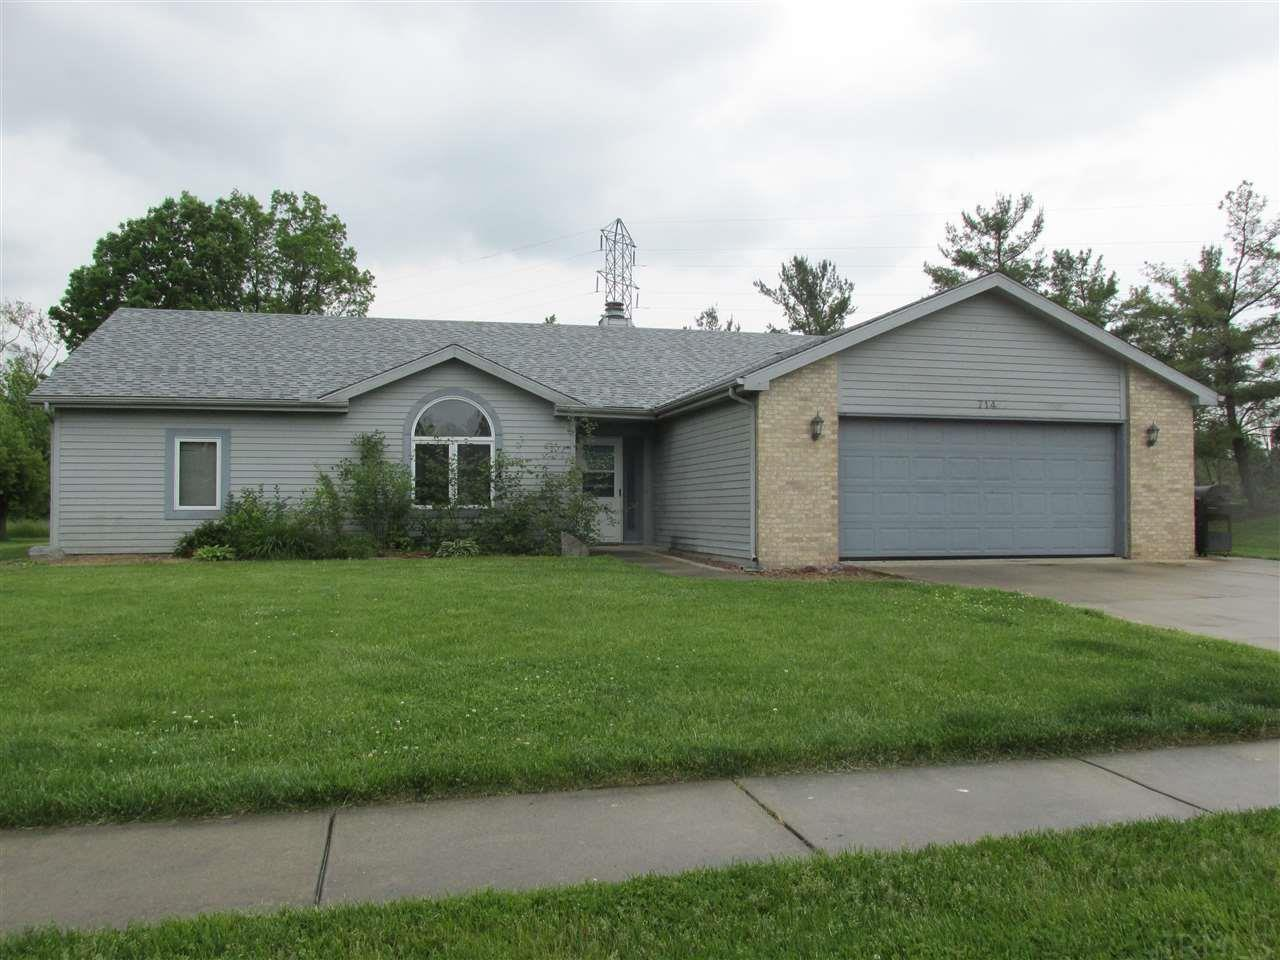 714 Willowind Trail, Fort Wayne, IN 46845